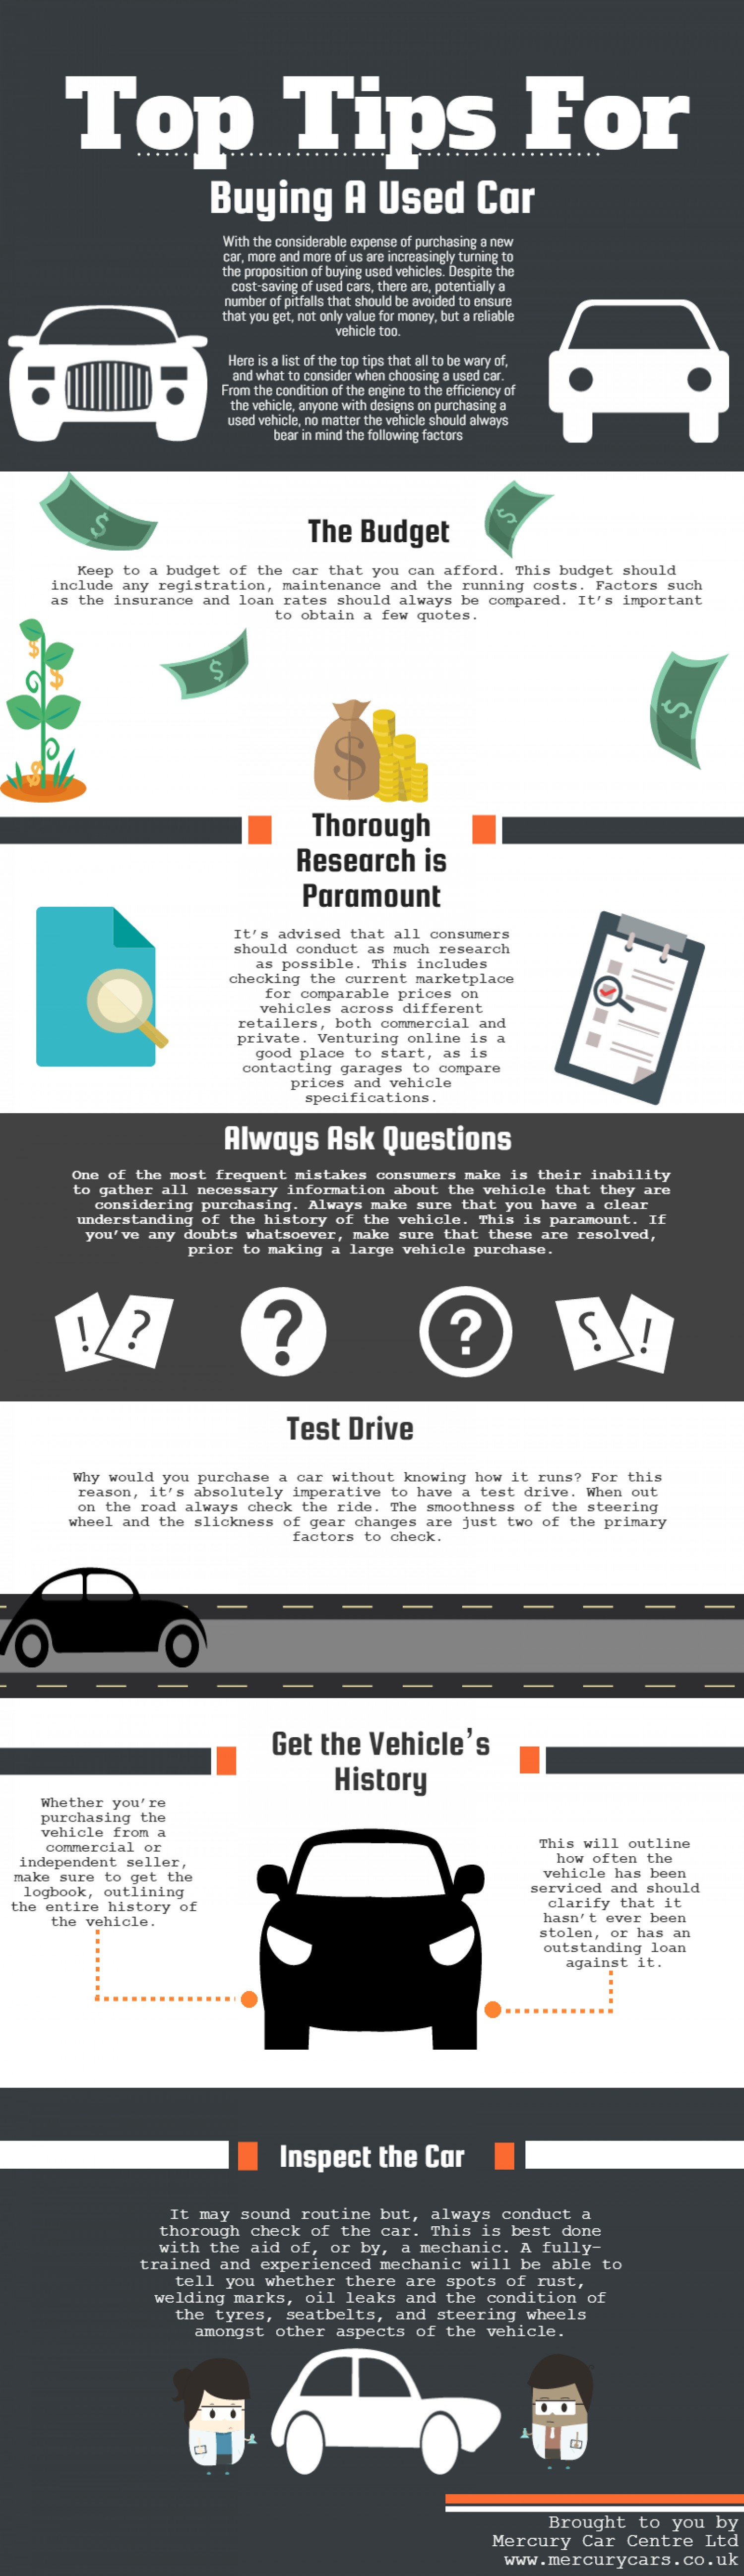 top tips for ing a used car infographic